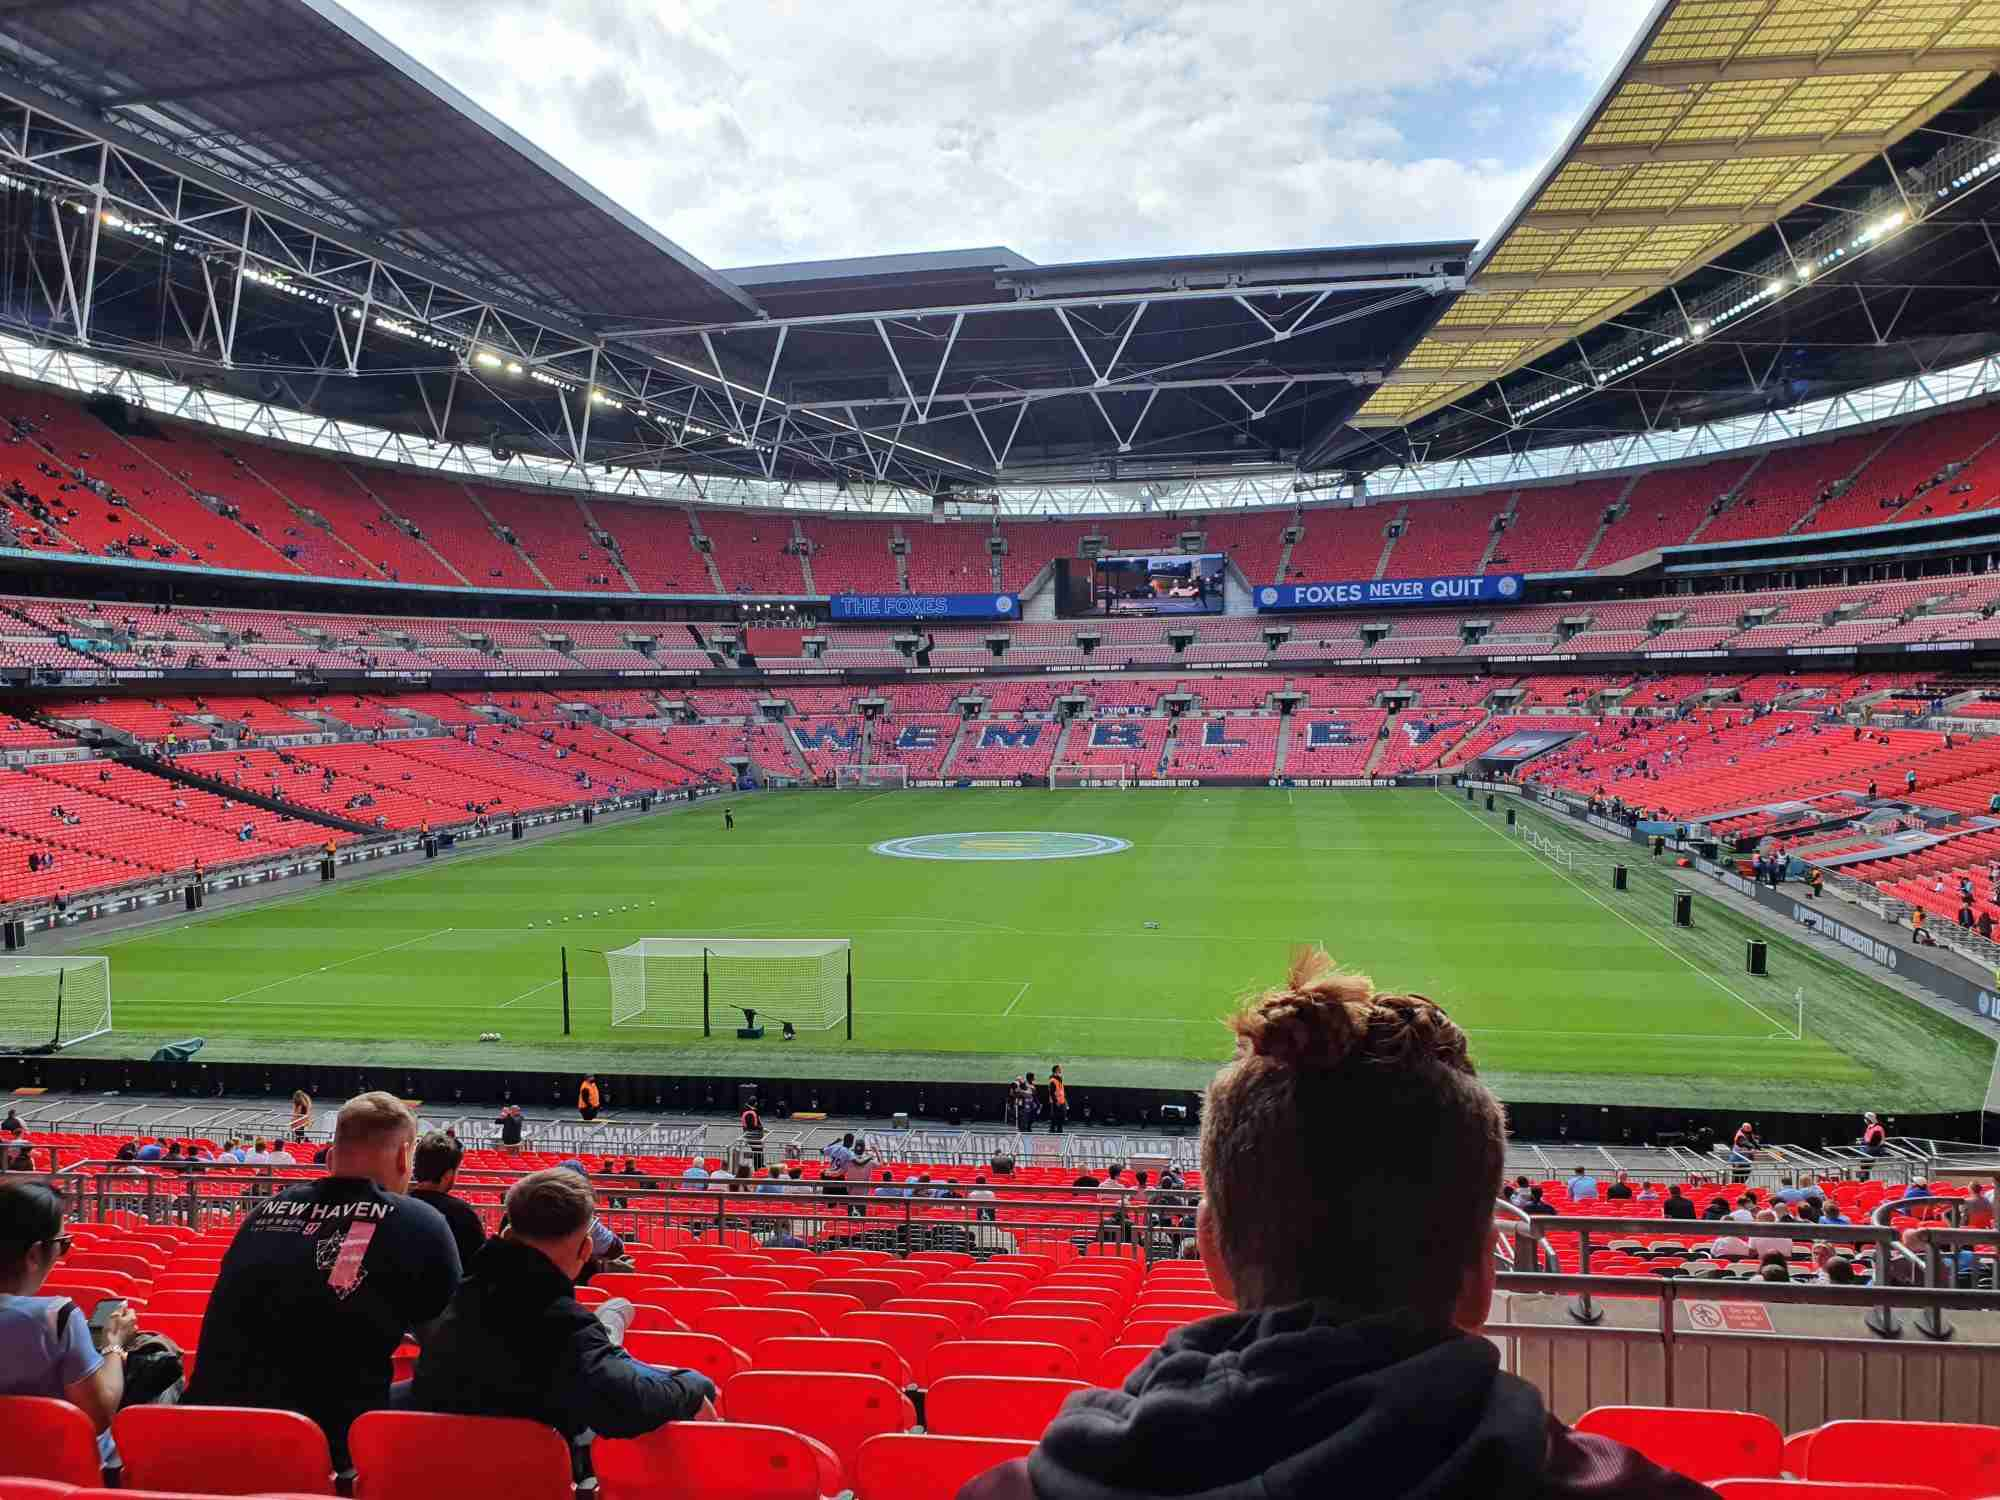 View from Seat Block 110 at Wembley Stadium